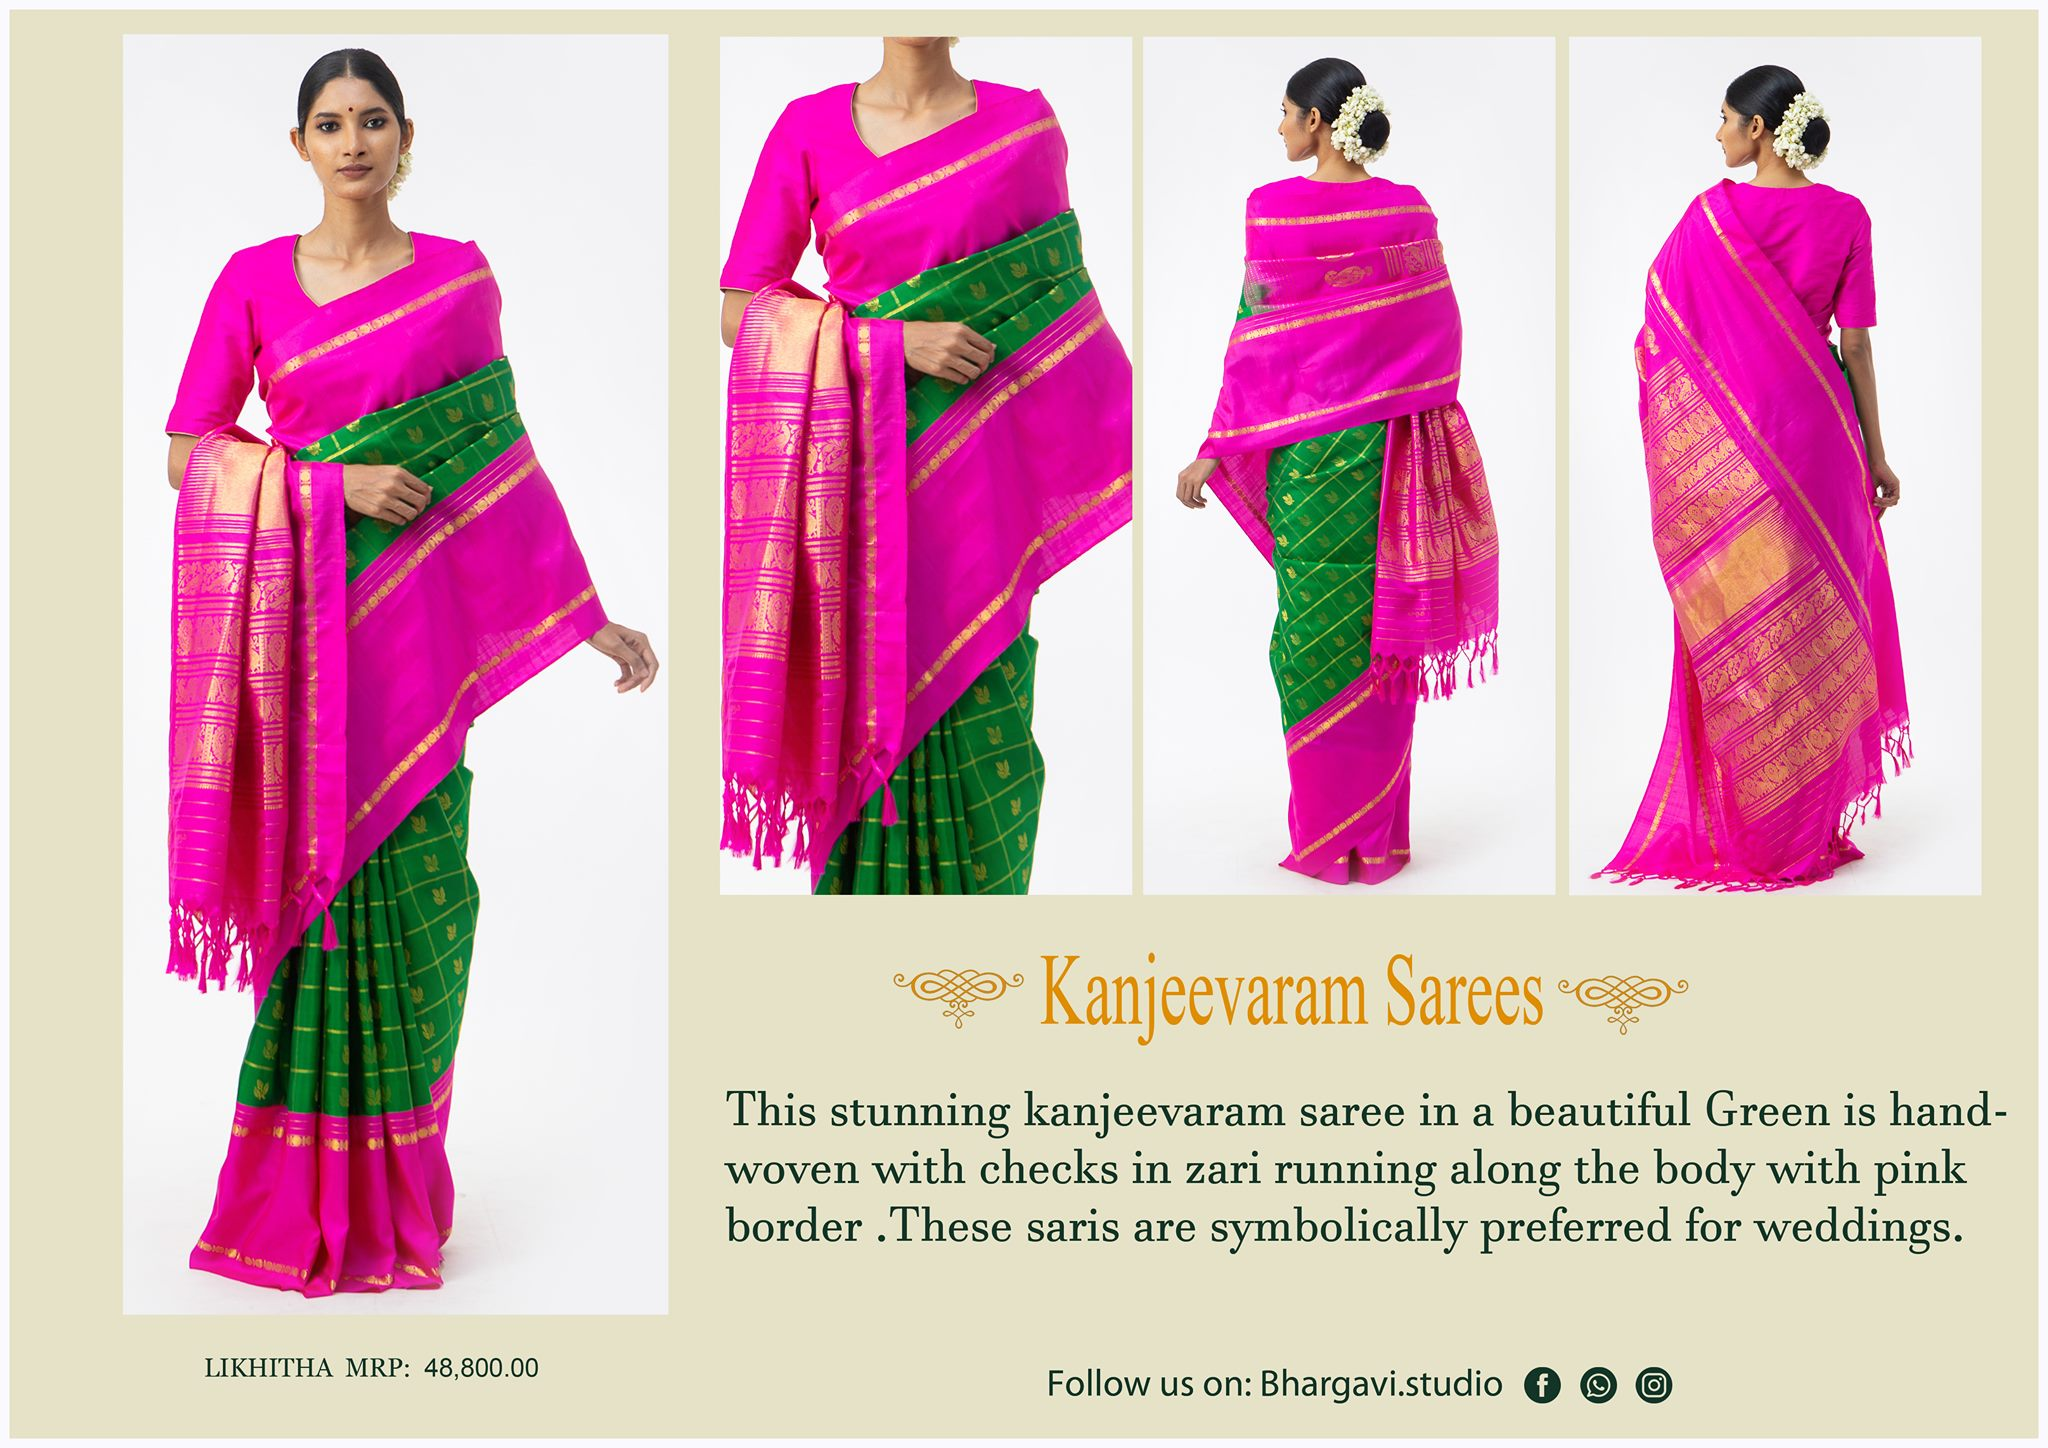 Stunning traditional kanjeevaram saree in a beautiful green is handwoven with checks in zari running along the body with pink boarder. Price : 48800/- 2021-05-08